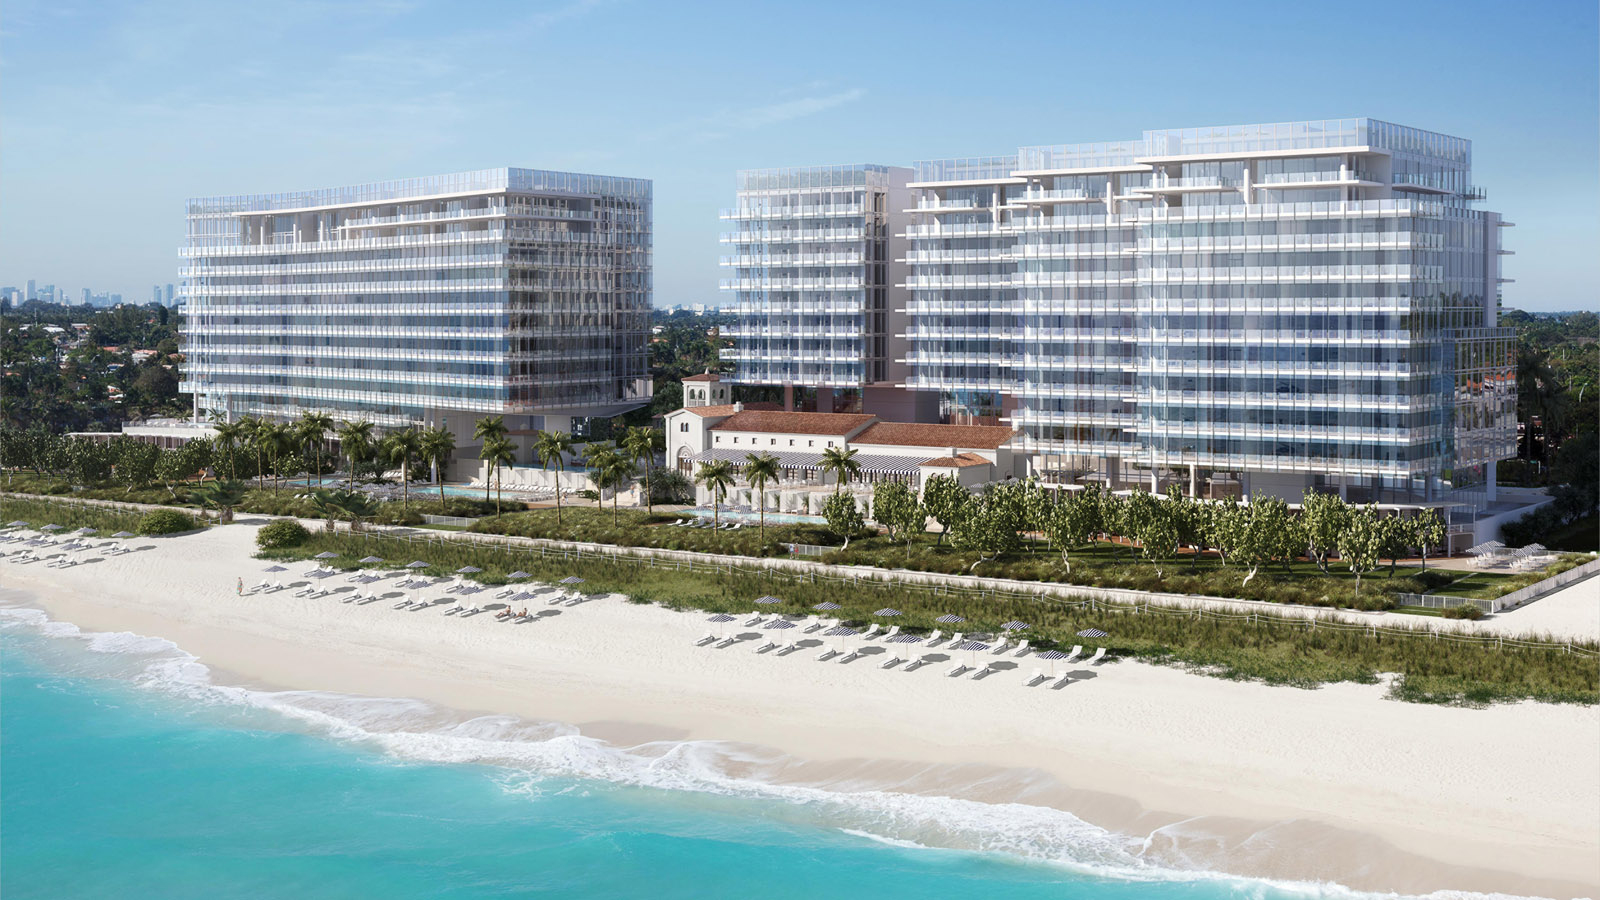 Miami Beach Area Hotel Event Venue | Four Seasons Hotel Surfside - Surfside Florida Map